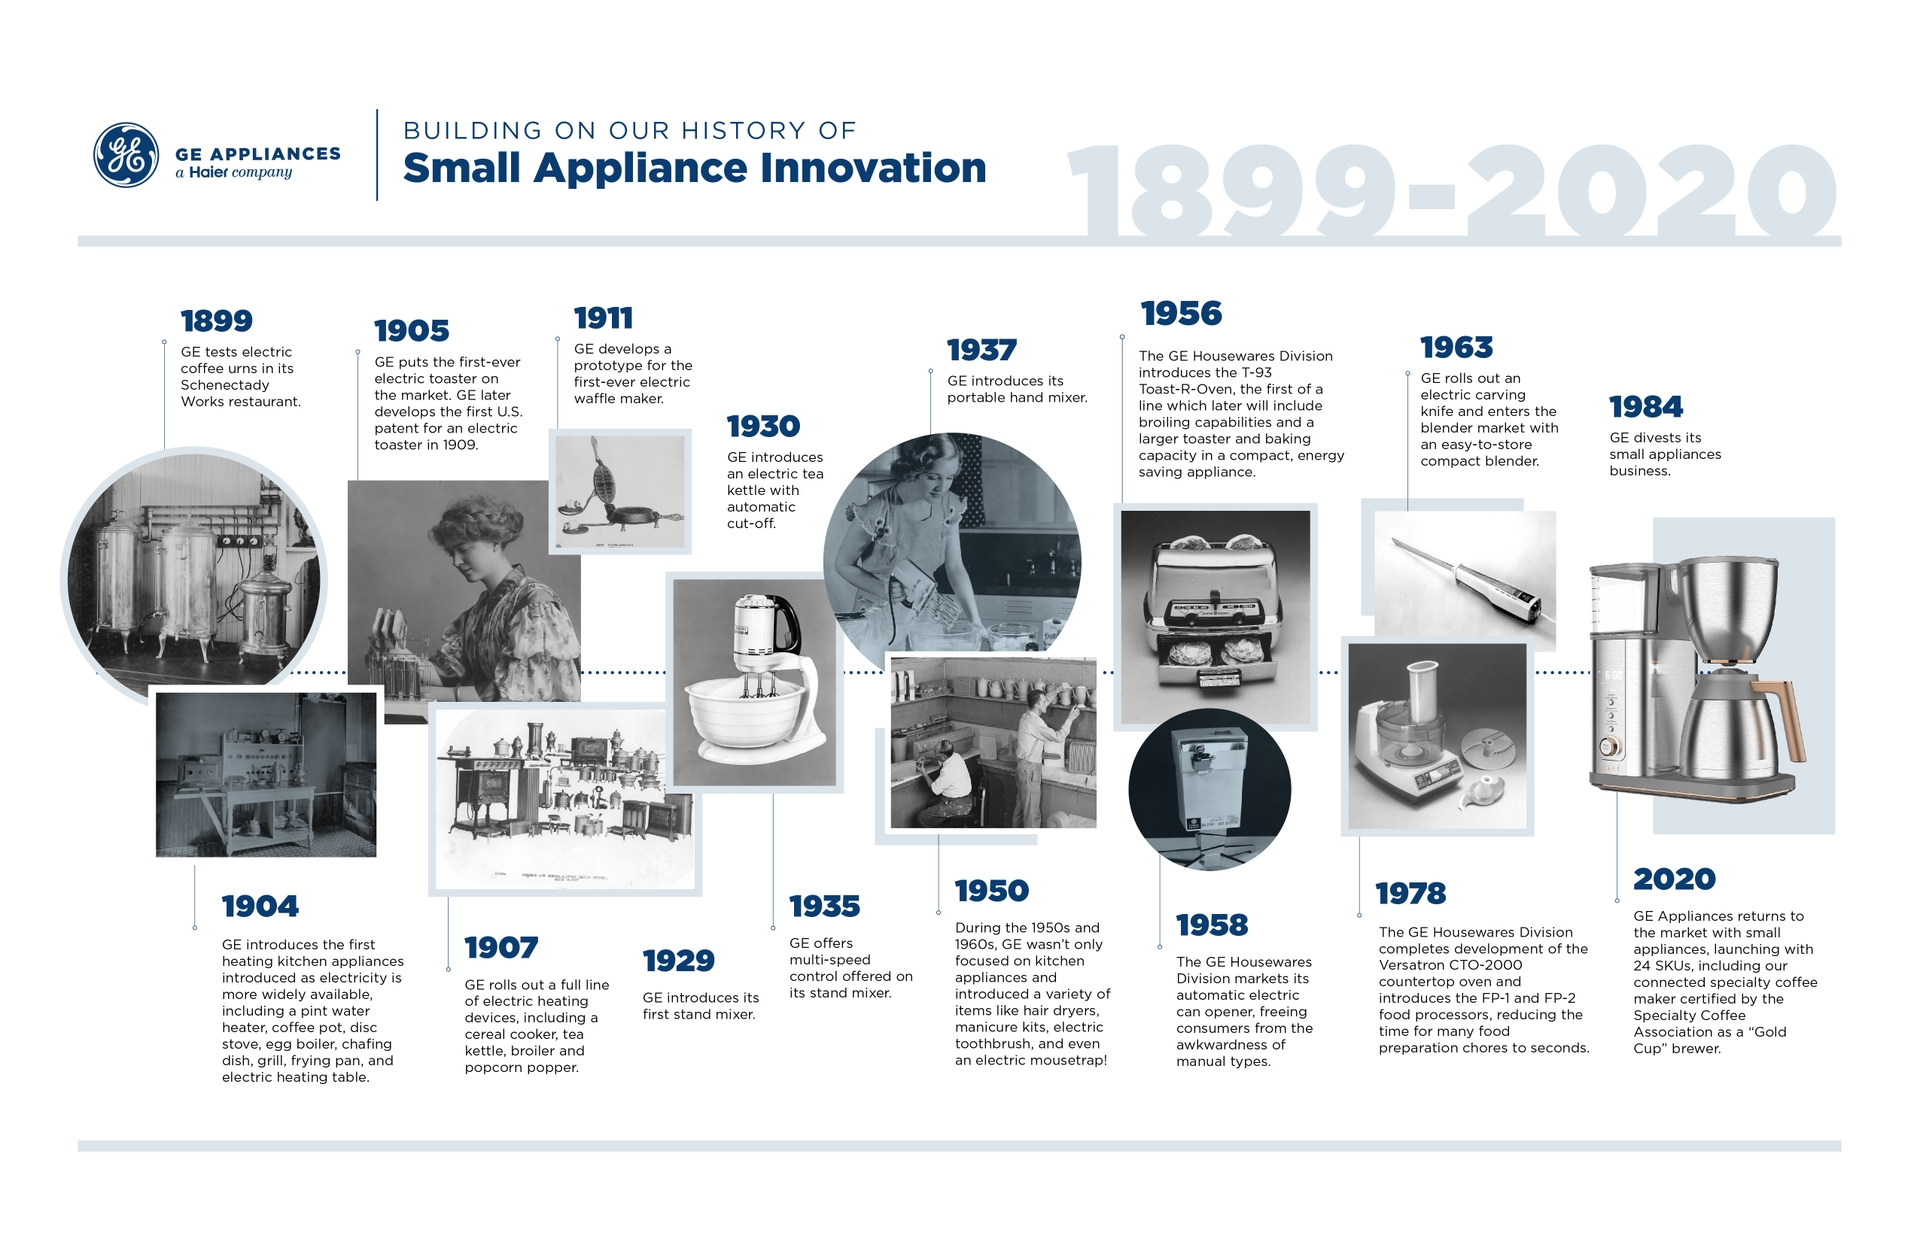 Building on Our History of Small Appliance Innovation